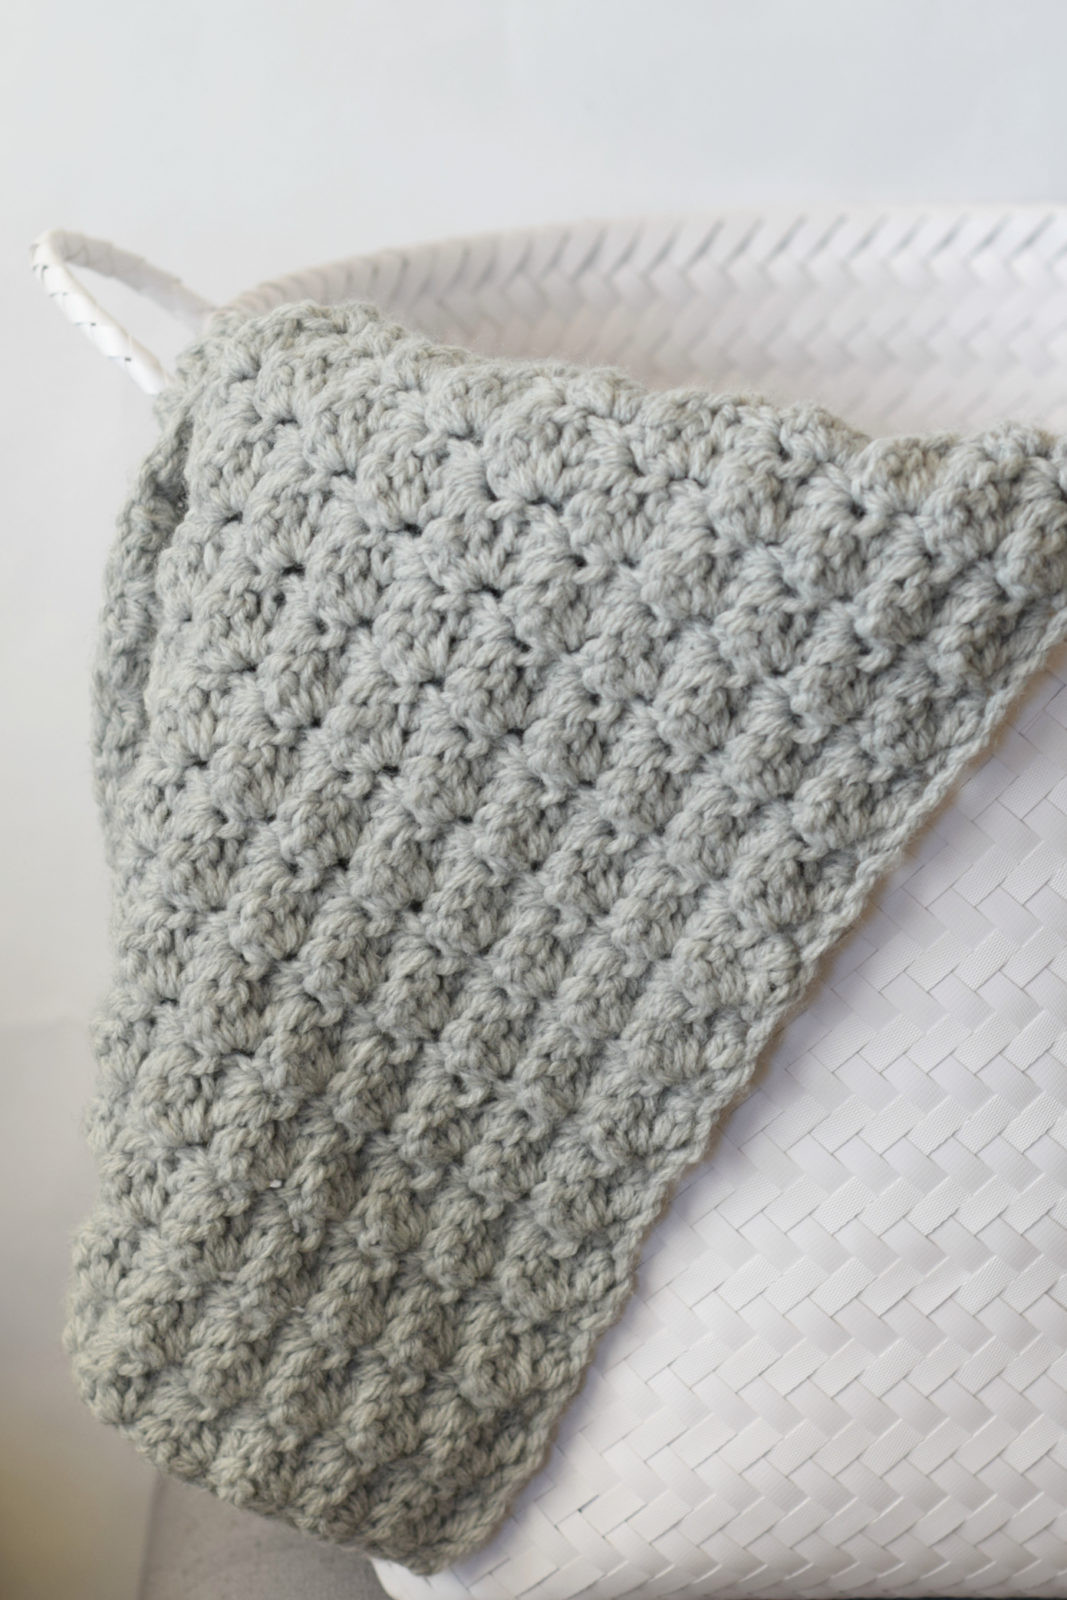 Different Crochet Patterns Lovely Simple Crocheted Blanket Go to Pattern – Mama In A Stitch Of Brilliant 48 Pictures Different Crochet Patterns